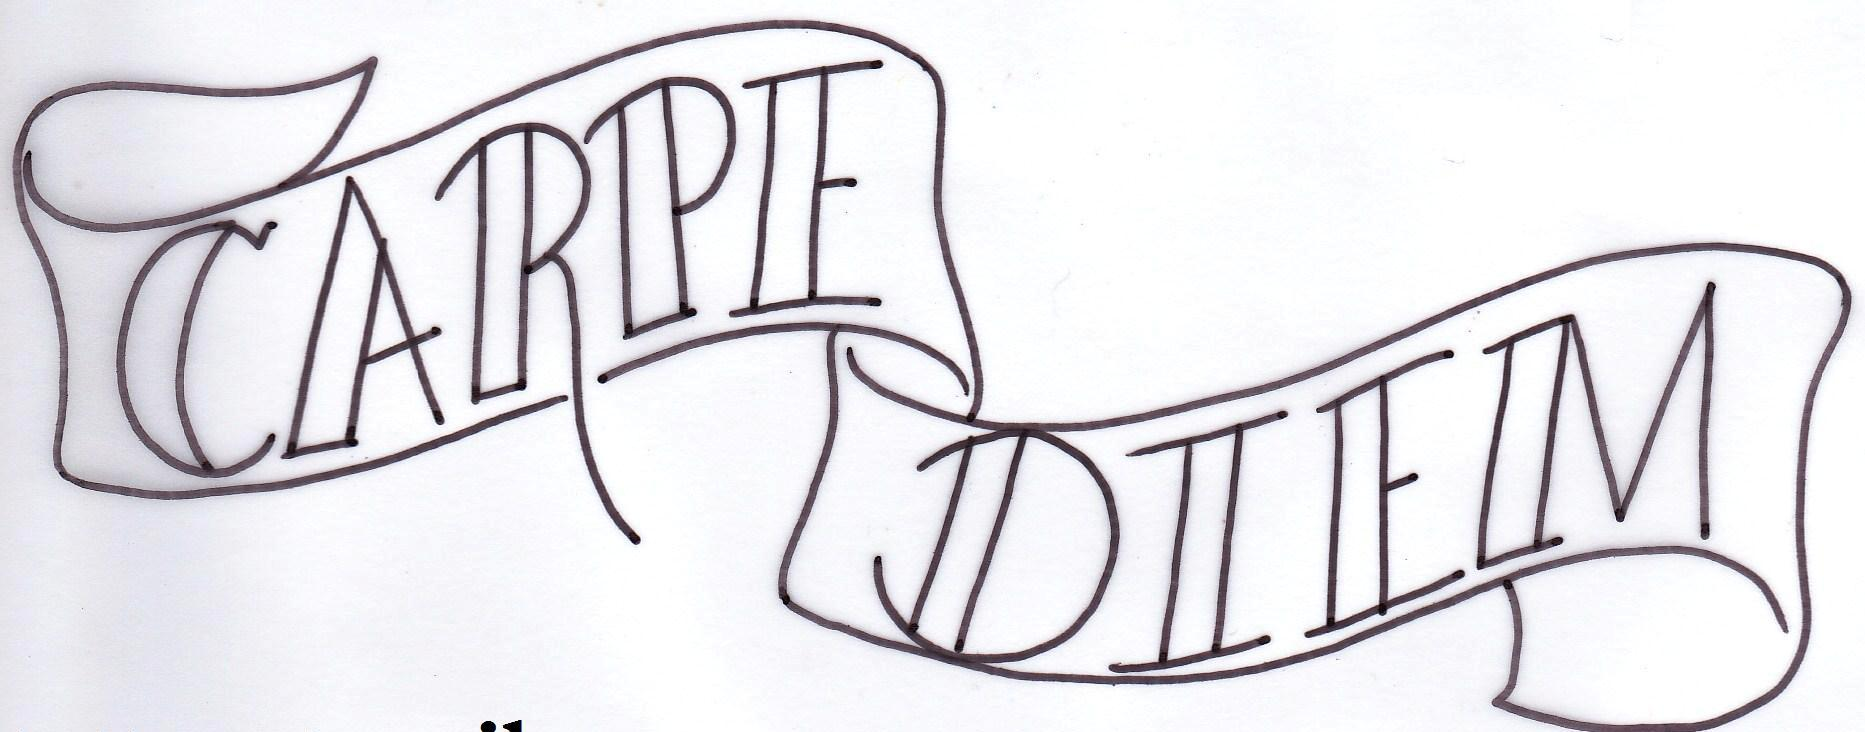 Carpe Diem Banner Tattoo Design